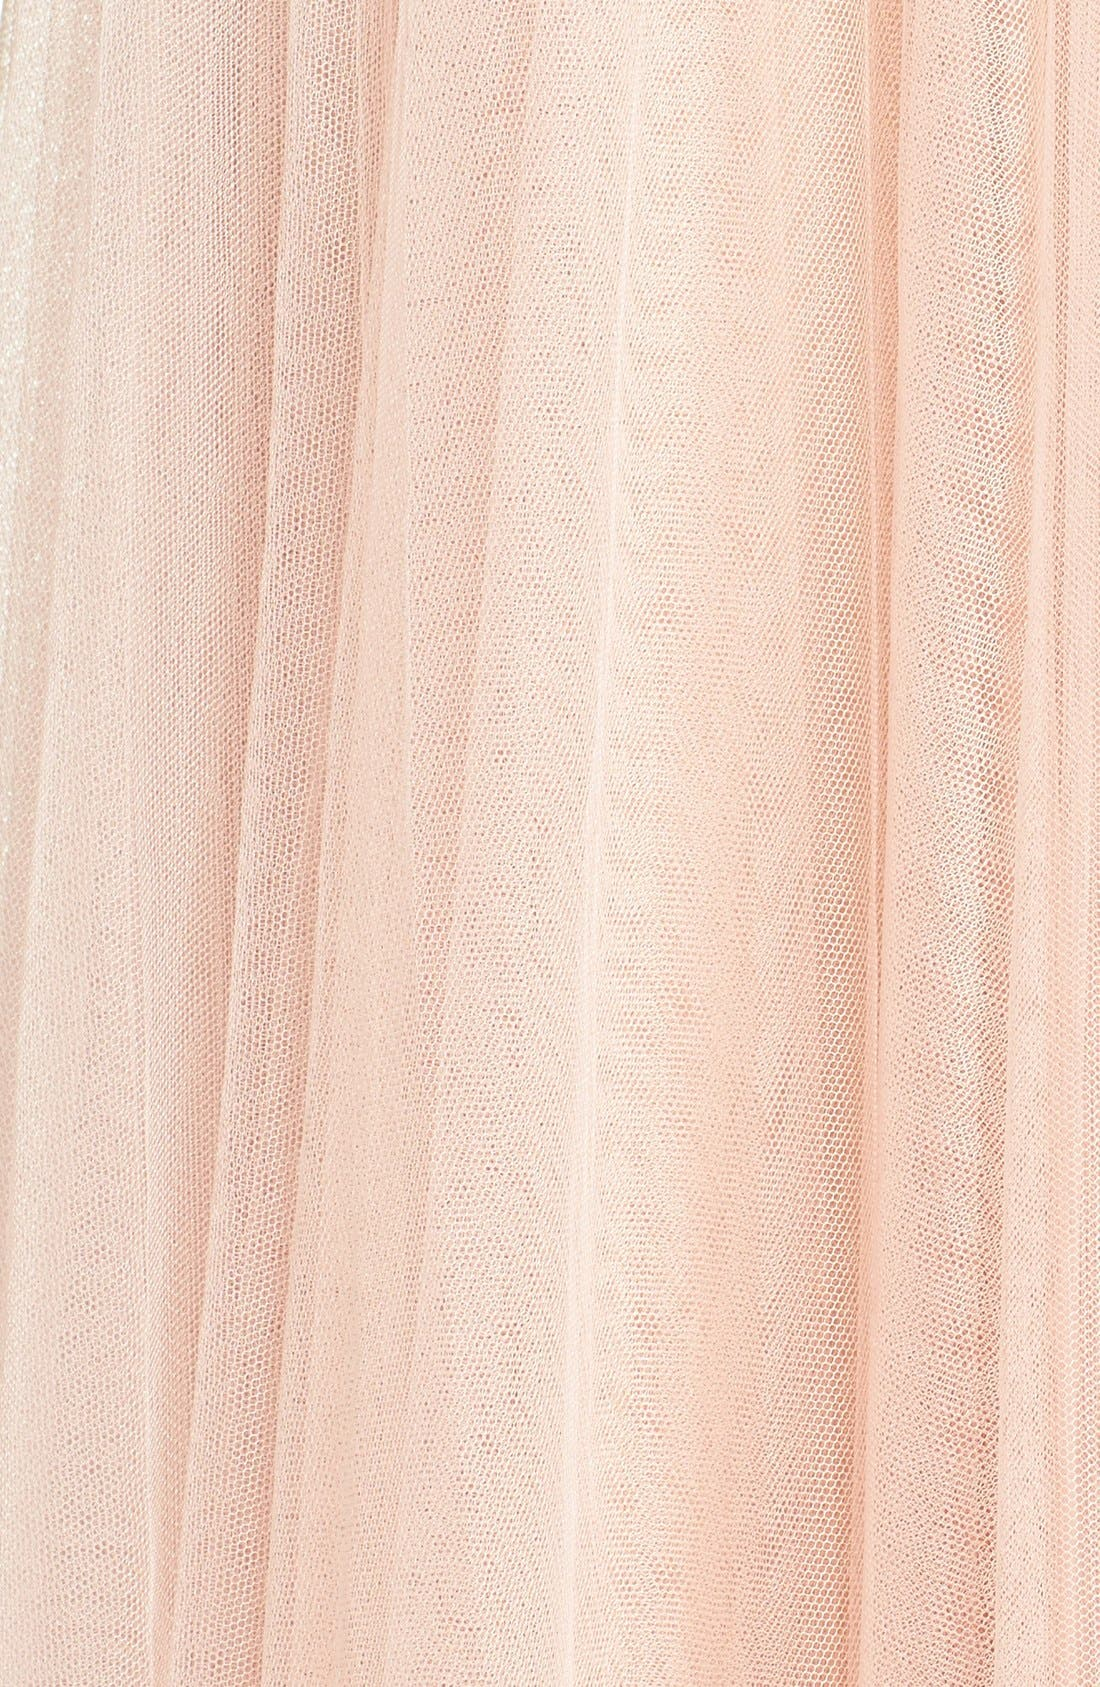 Winslow Long Tulle A-Line Skirt,                             Alternate thumbnail 11, color,                             CAMEO PINK